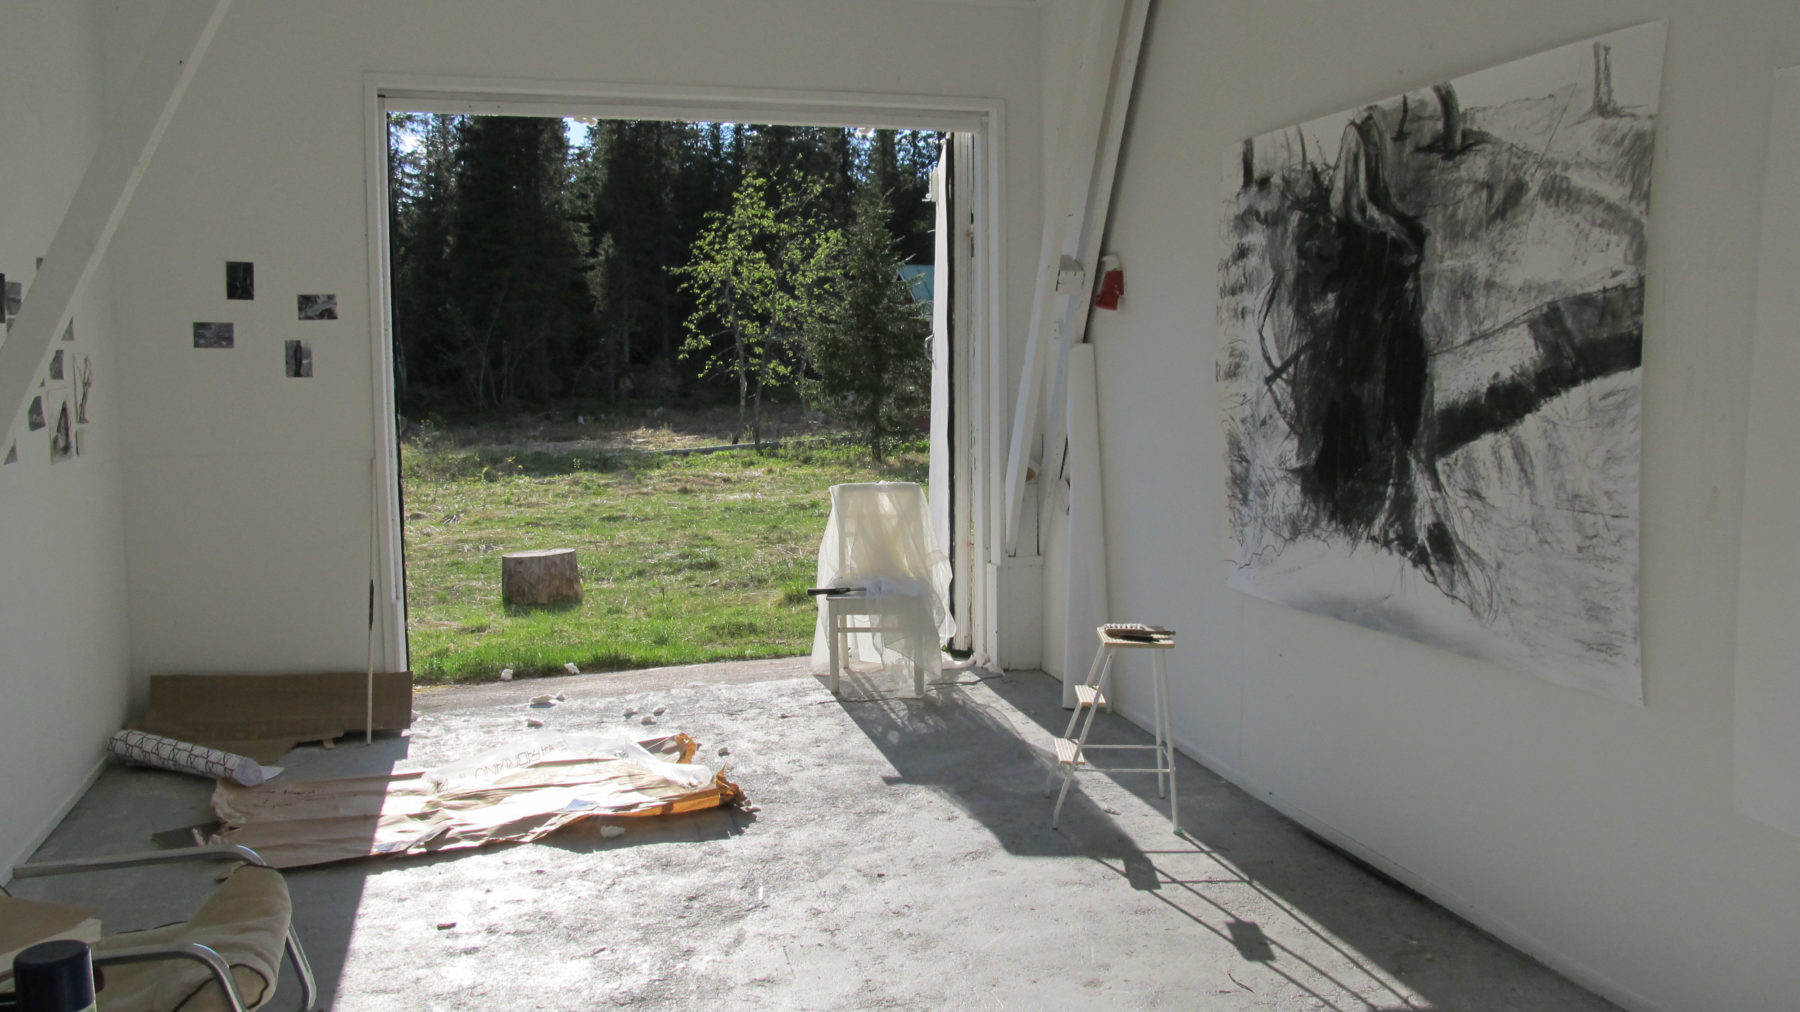 Studio view at Mustarinda Residency, Finland, 2013